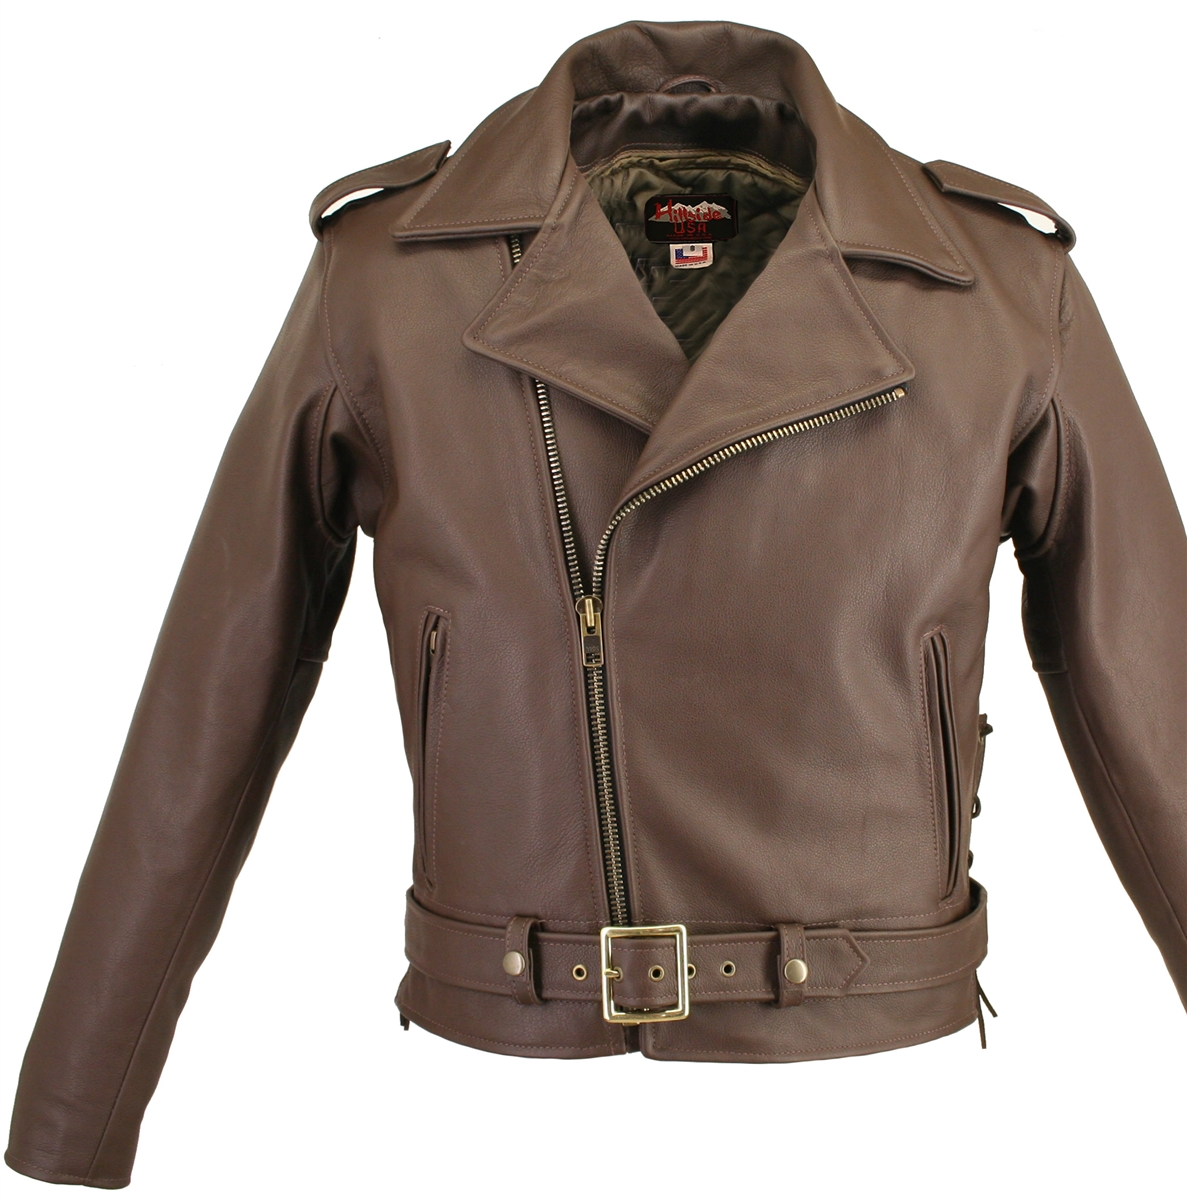 Men's Full Belted Brown Leather Biker Jacket. QUALITY construction ...INSIDE OUT! Well thought-out design with new and innovative features 1.6-1.8 mm (4-4 1/2 oz.) soft, supple, and Thick Brown Cowhide Naked Leather and the craftsmanship that only Hillsid